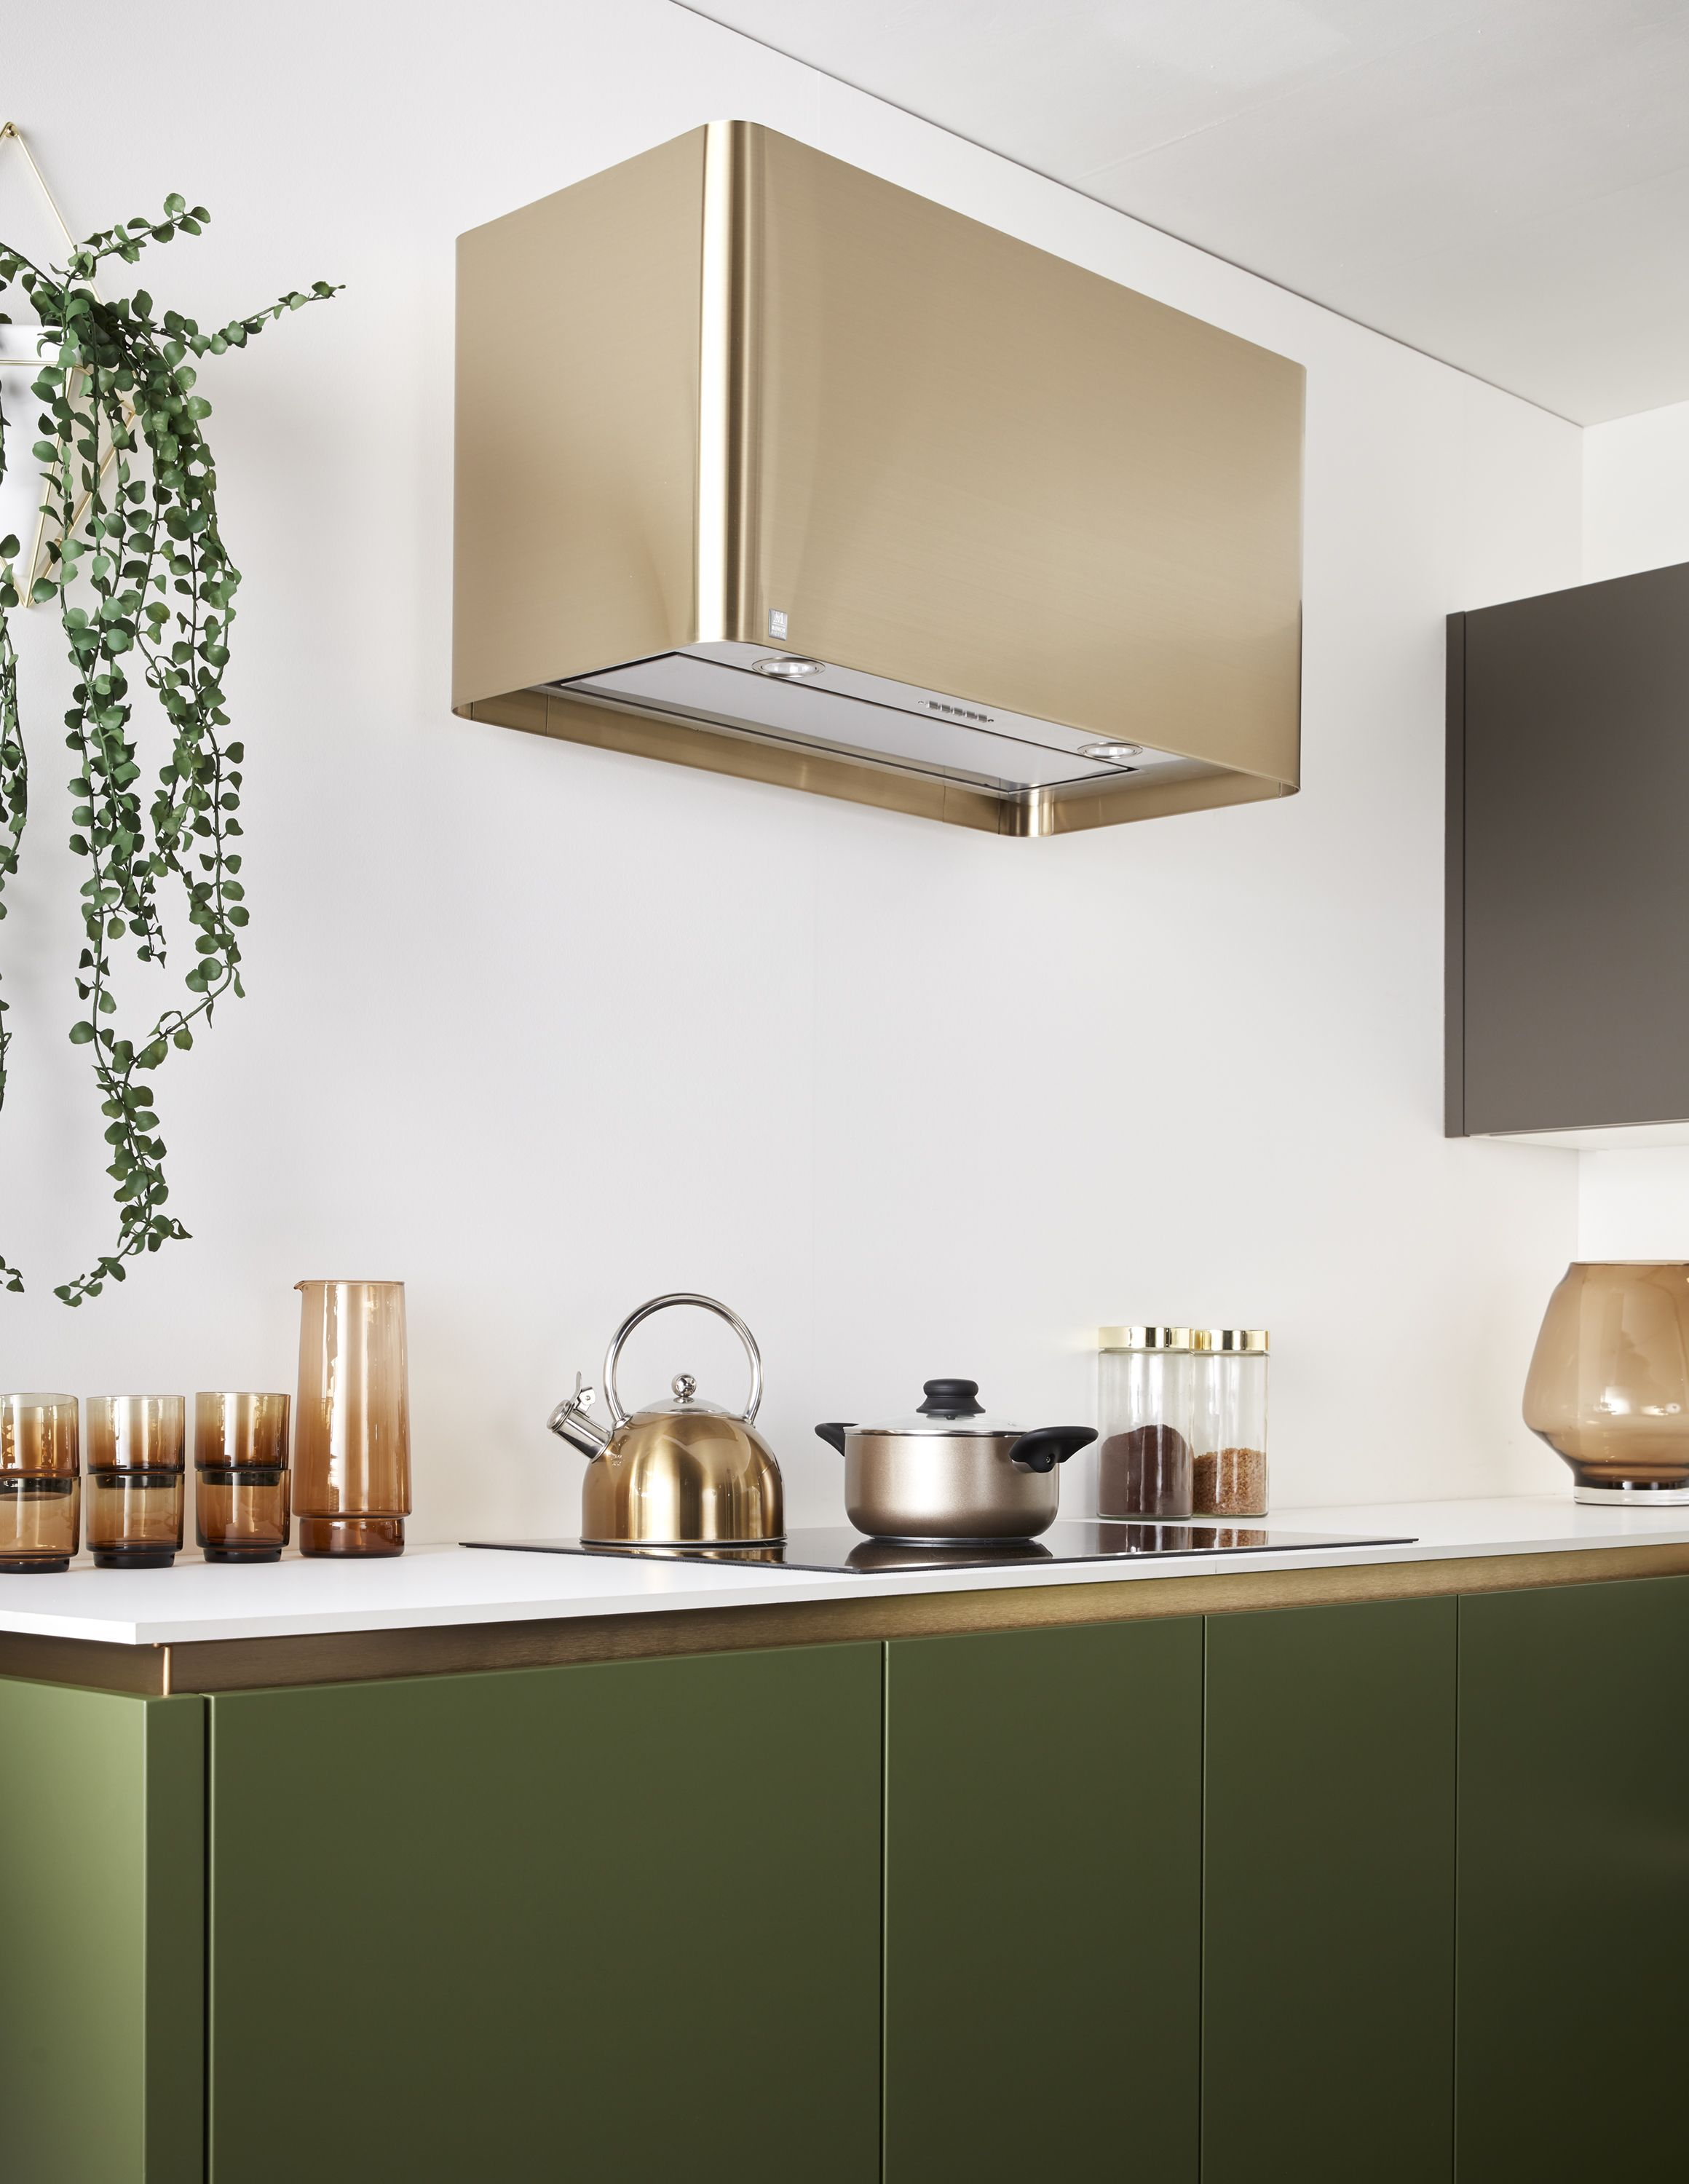 How Spellbinding Is This Brushed Brass Cooker Hood Colourscheme Interiors Home Decor Grey Gre Kitchen Trends Top Kitchen Trends Latest Kitchen Designs